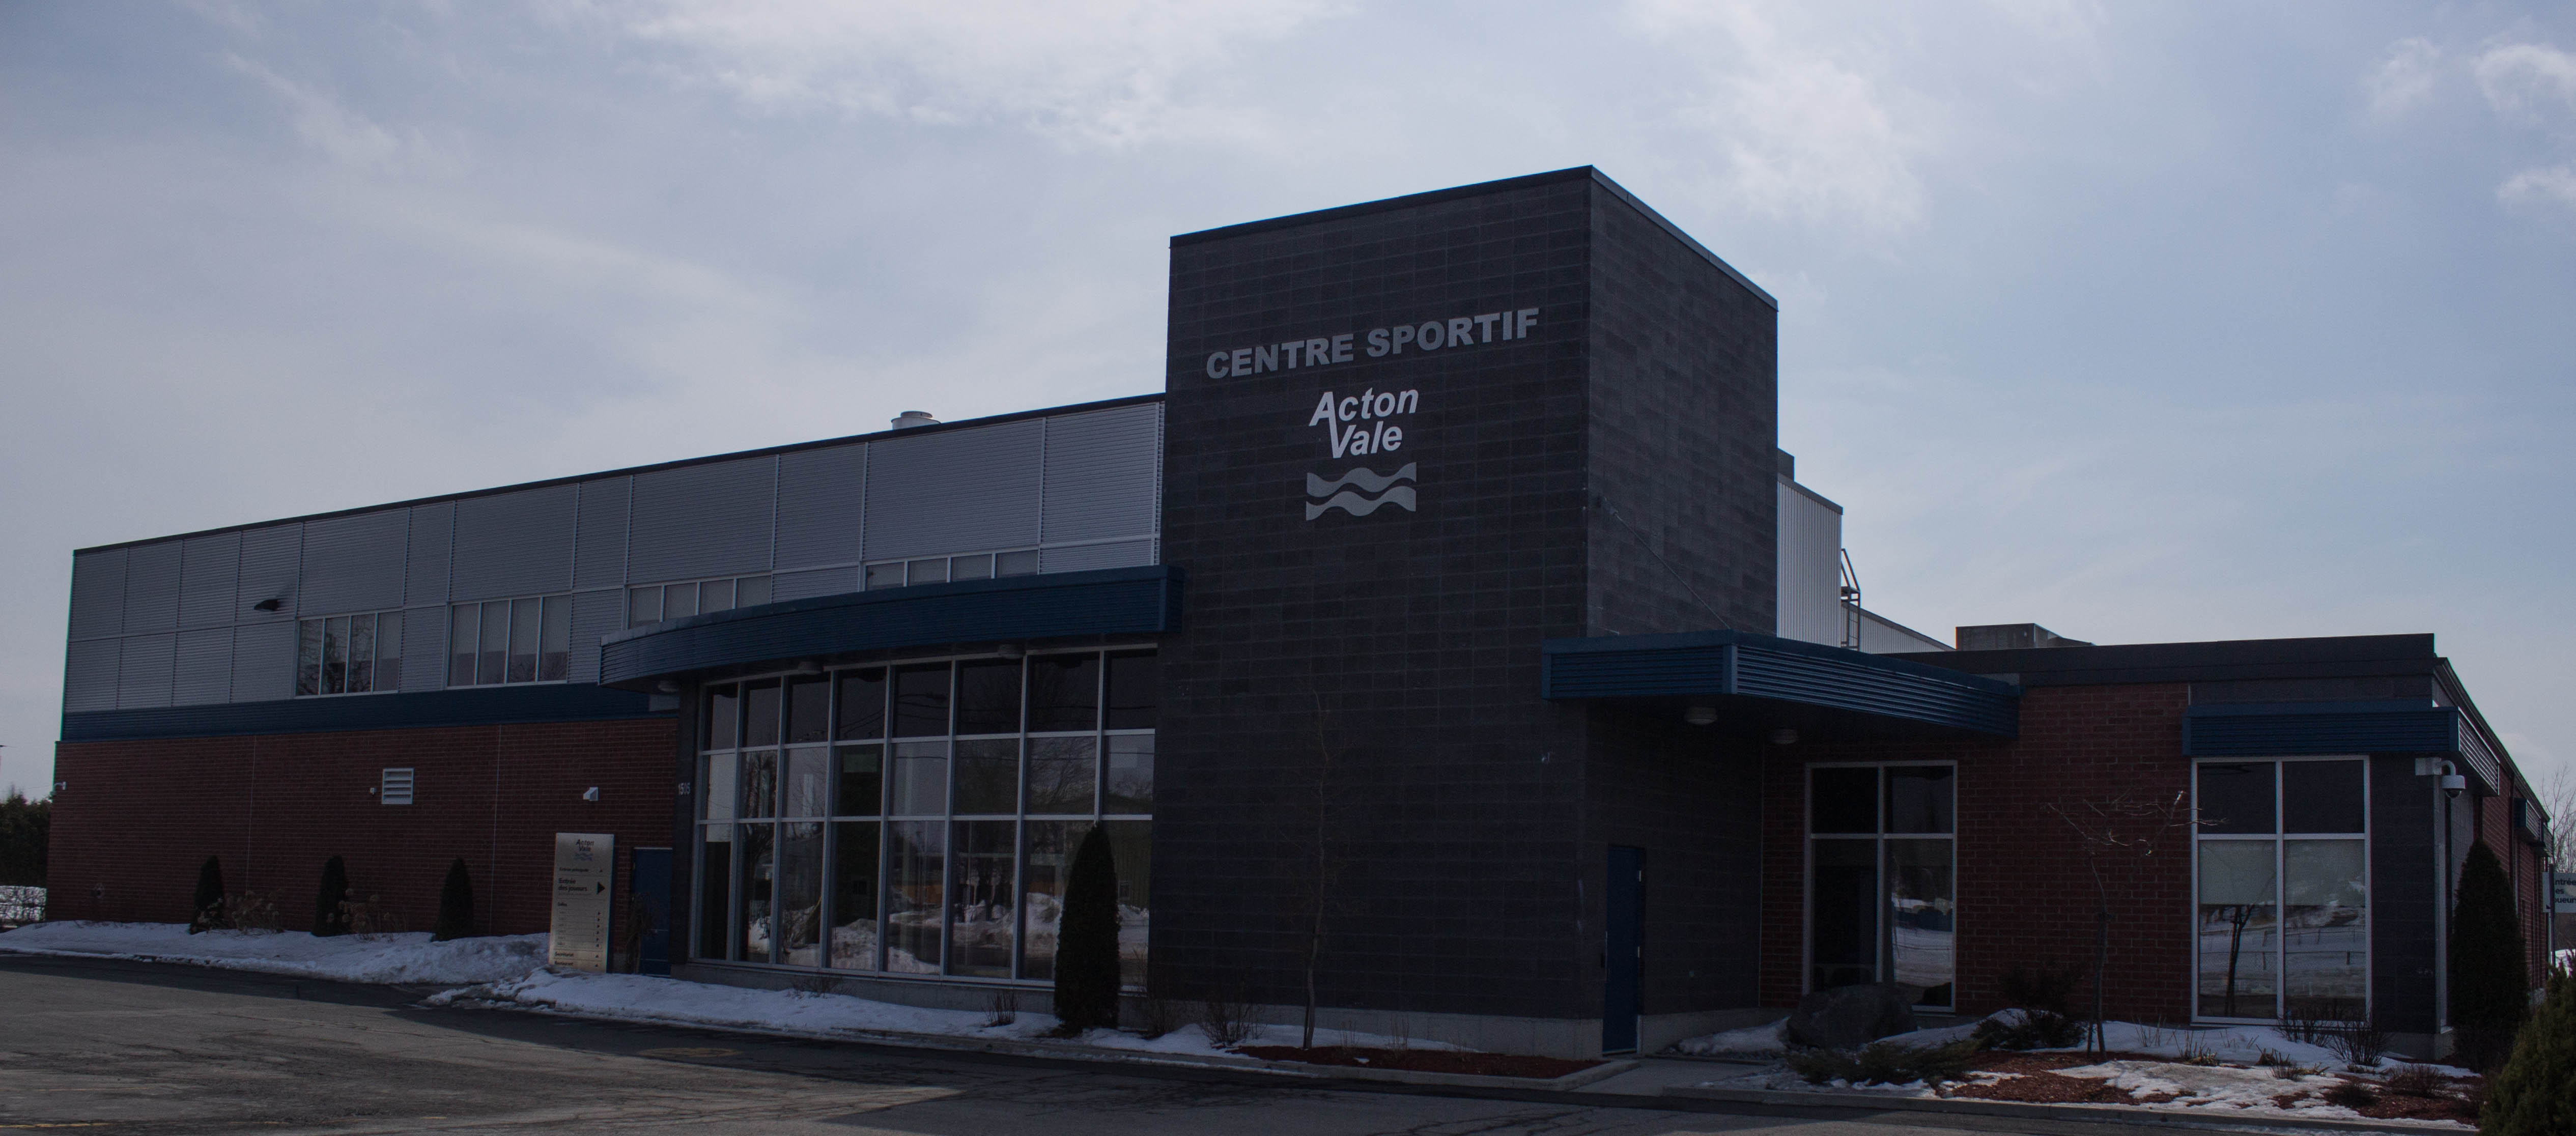 File Centre Sportif Acton Vale 2 Jpg Wikimedia Commons